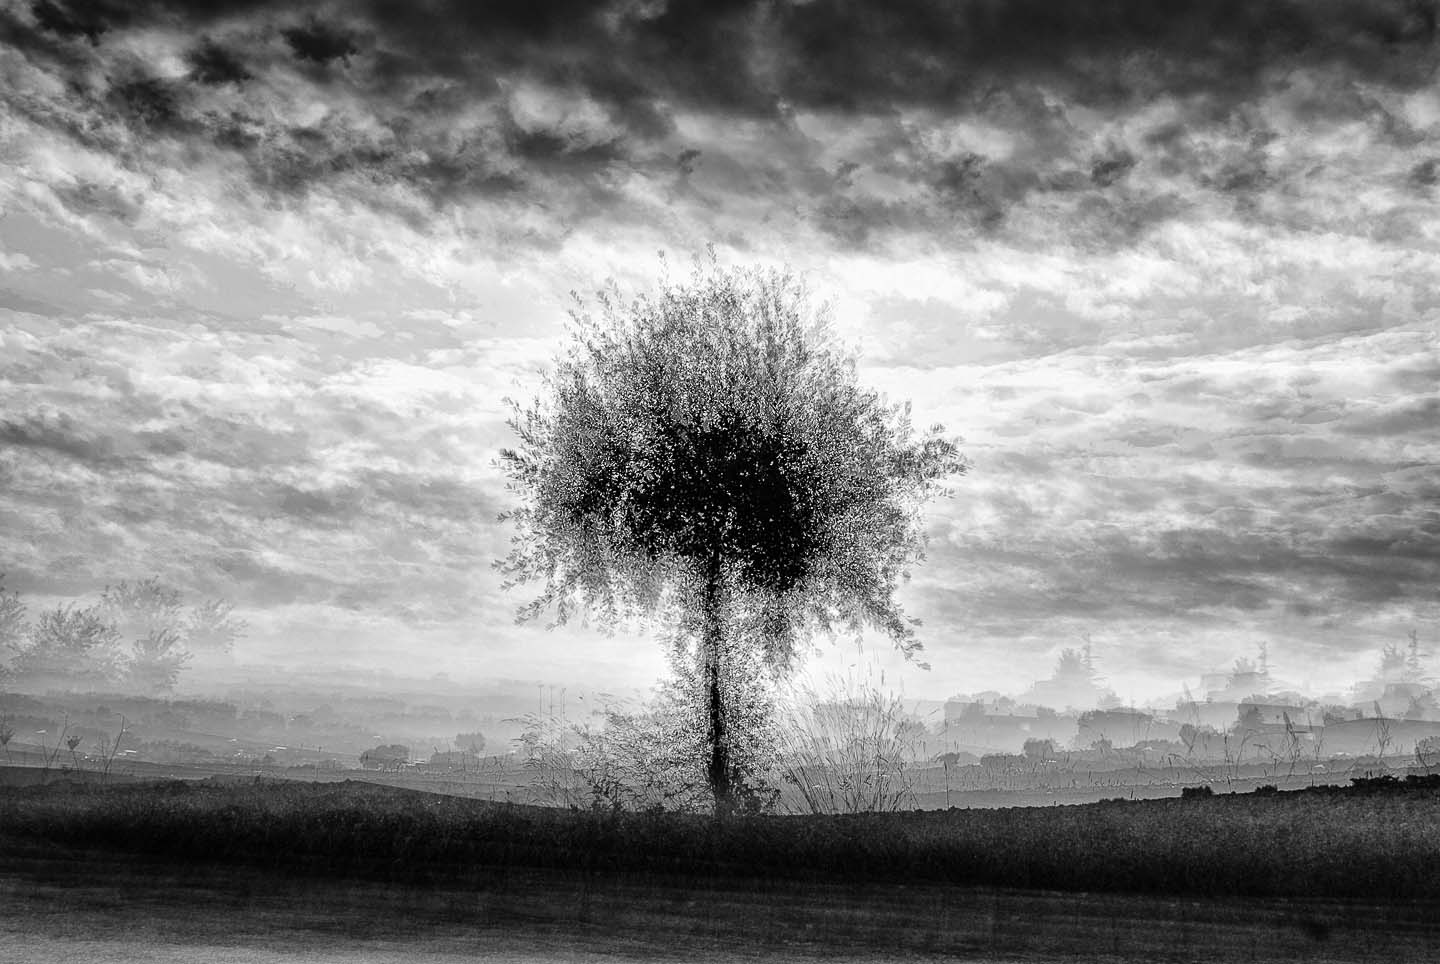 Multiexposure rural